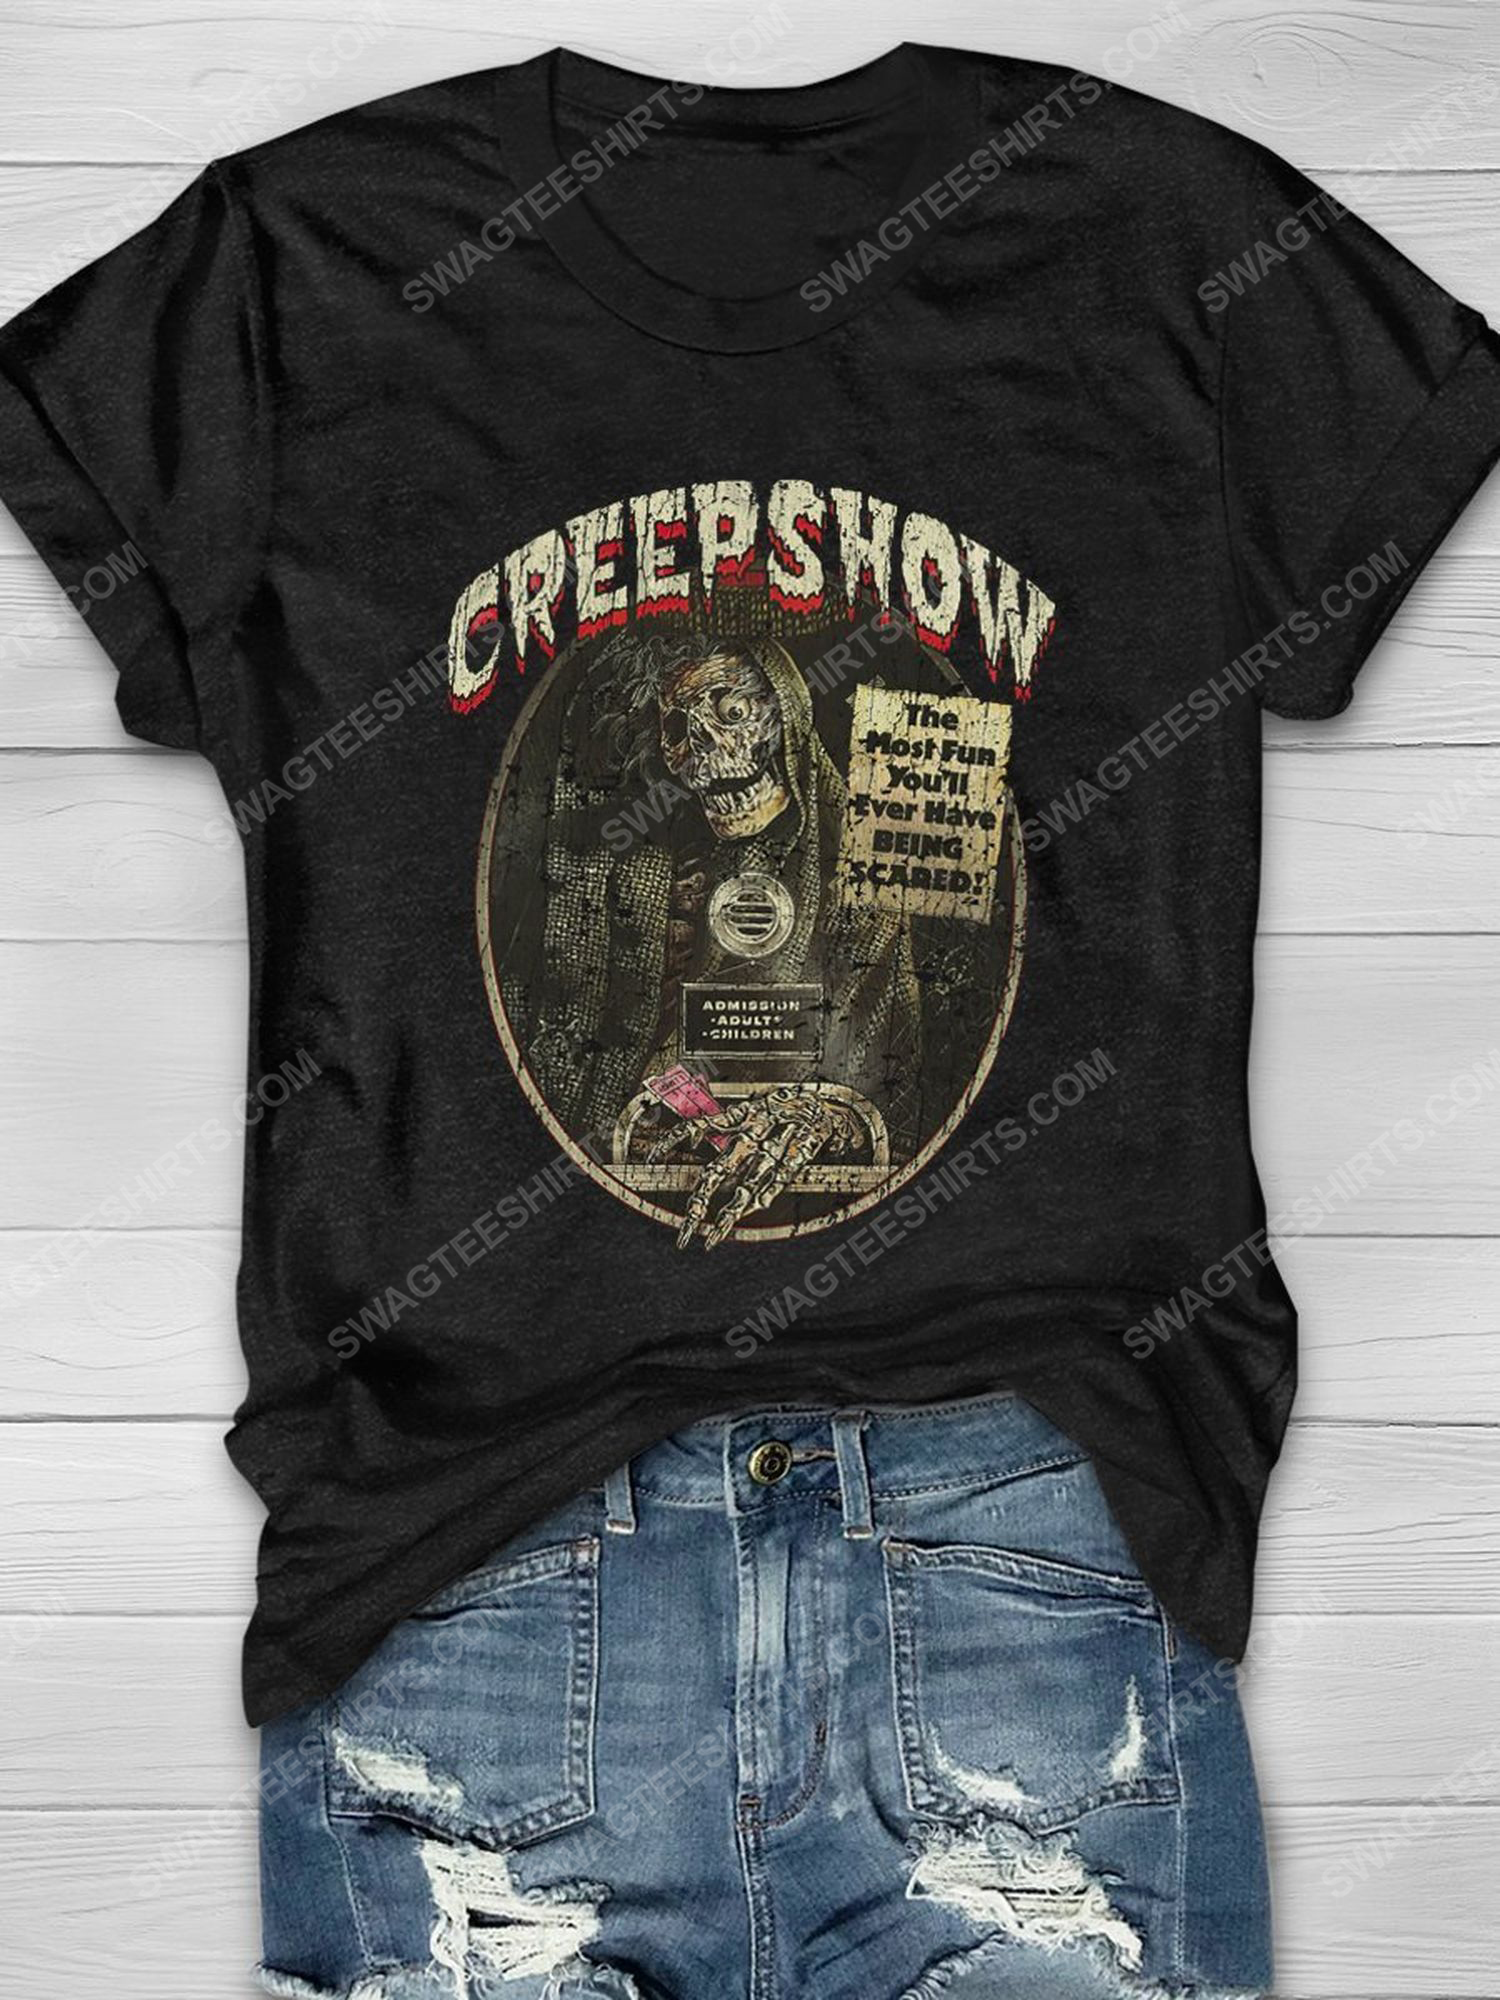 Halloween creepshow the most fun you'll ever have being scared shirt 1 - Copy (3)